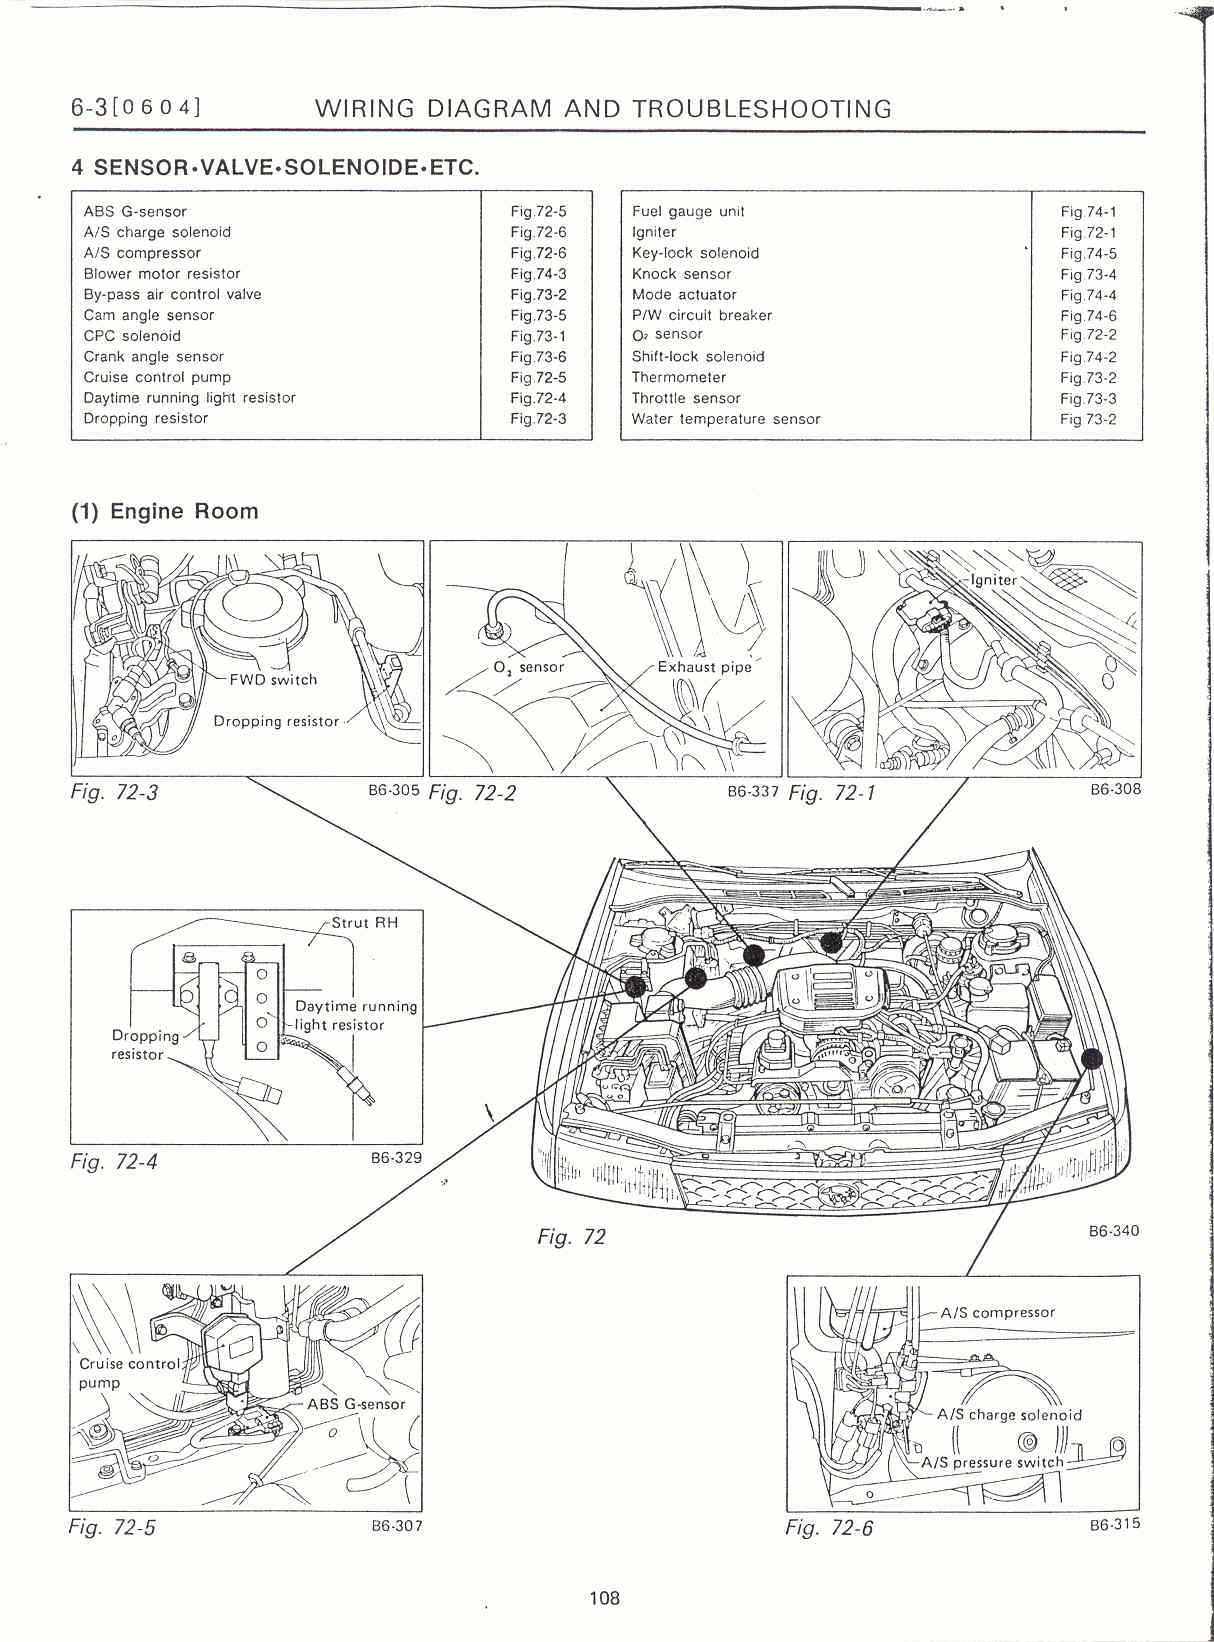 Subaru Forester Gt Wiring Diagram Surrealmirage Legacy Swap Electrical Info Notes Engine Room